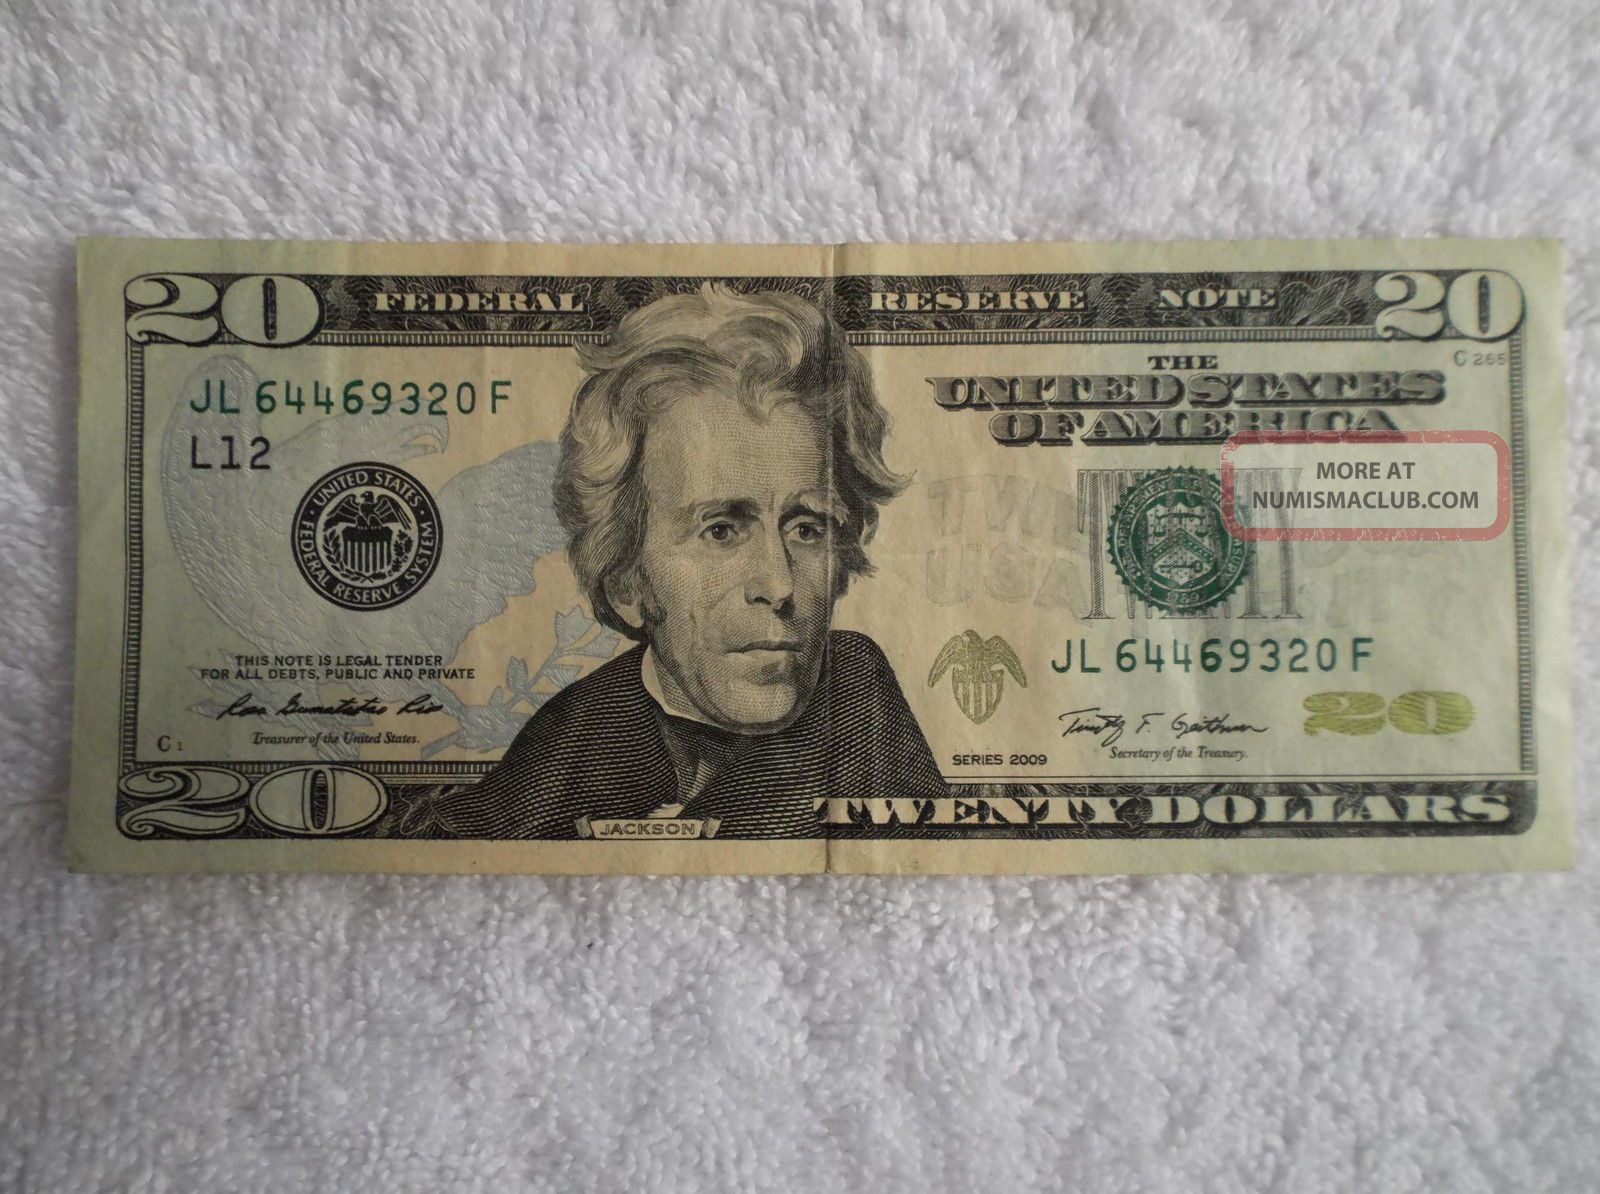 dollar bills with serial numbers in order